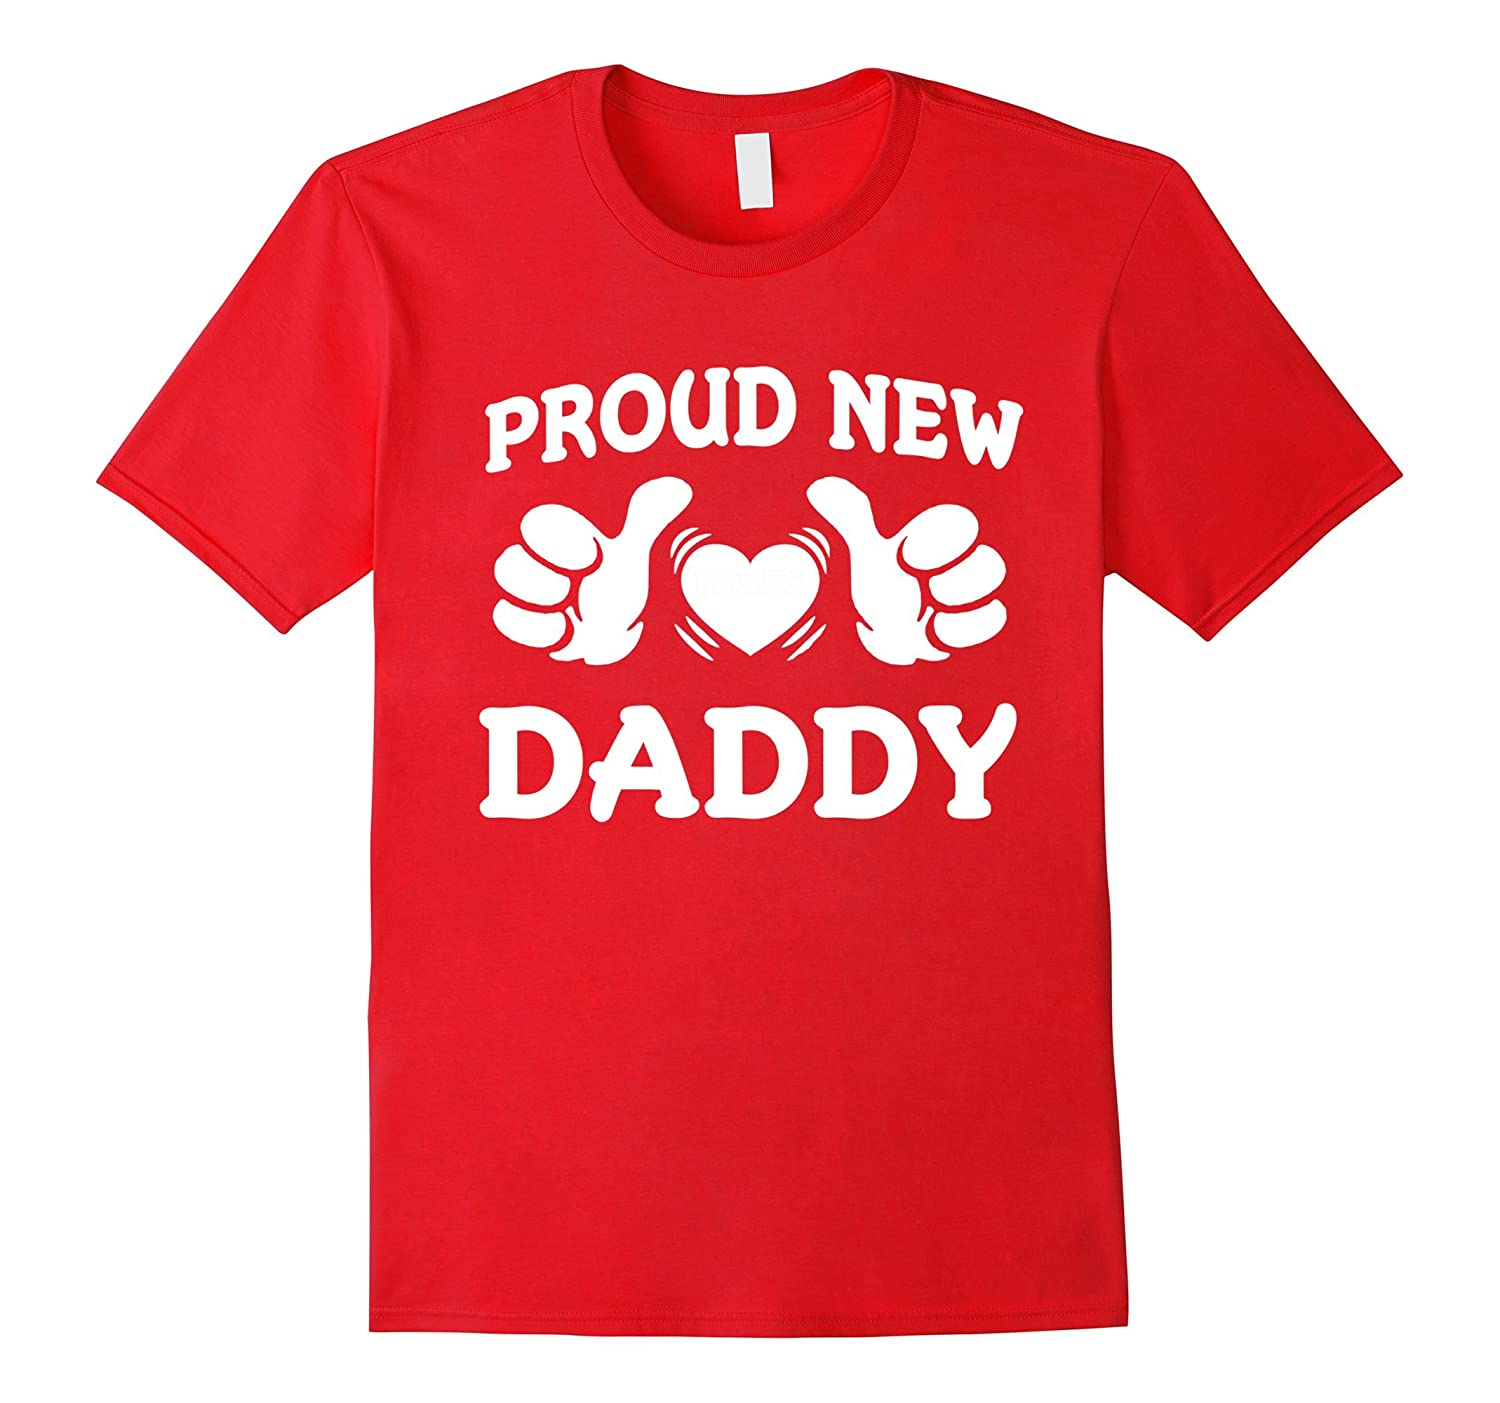 68edef5c Funny PROUD NEW DADDY T-shirt Gift for new dads fathers - Goatstee